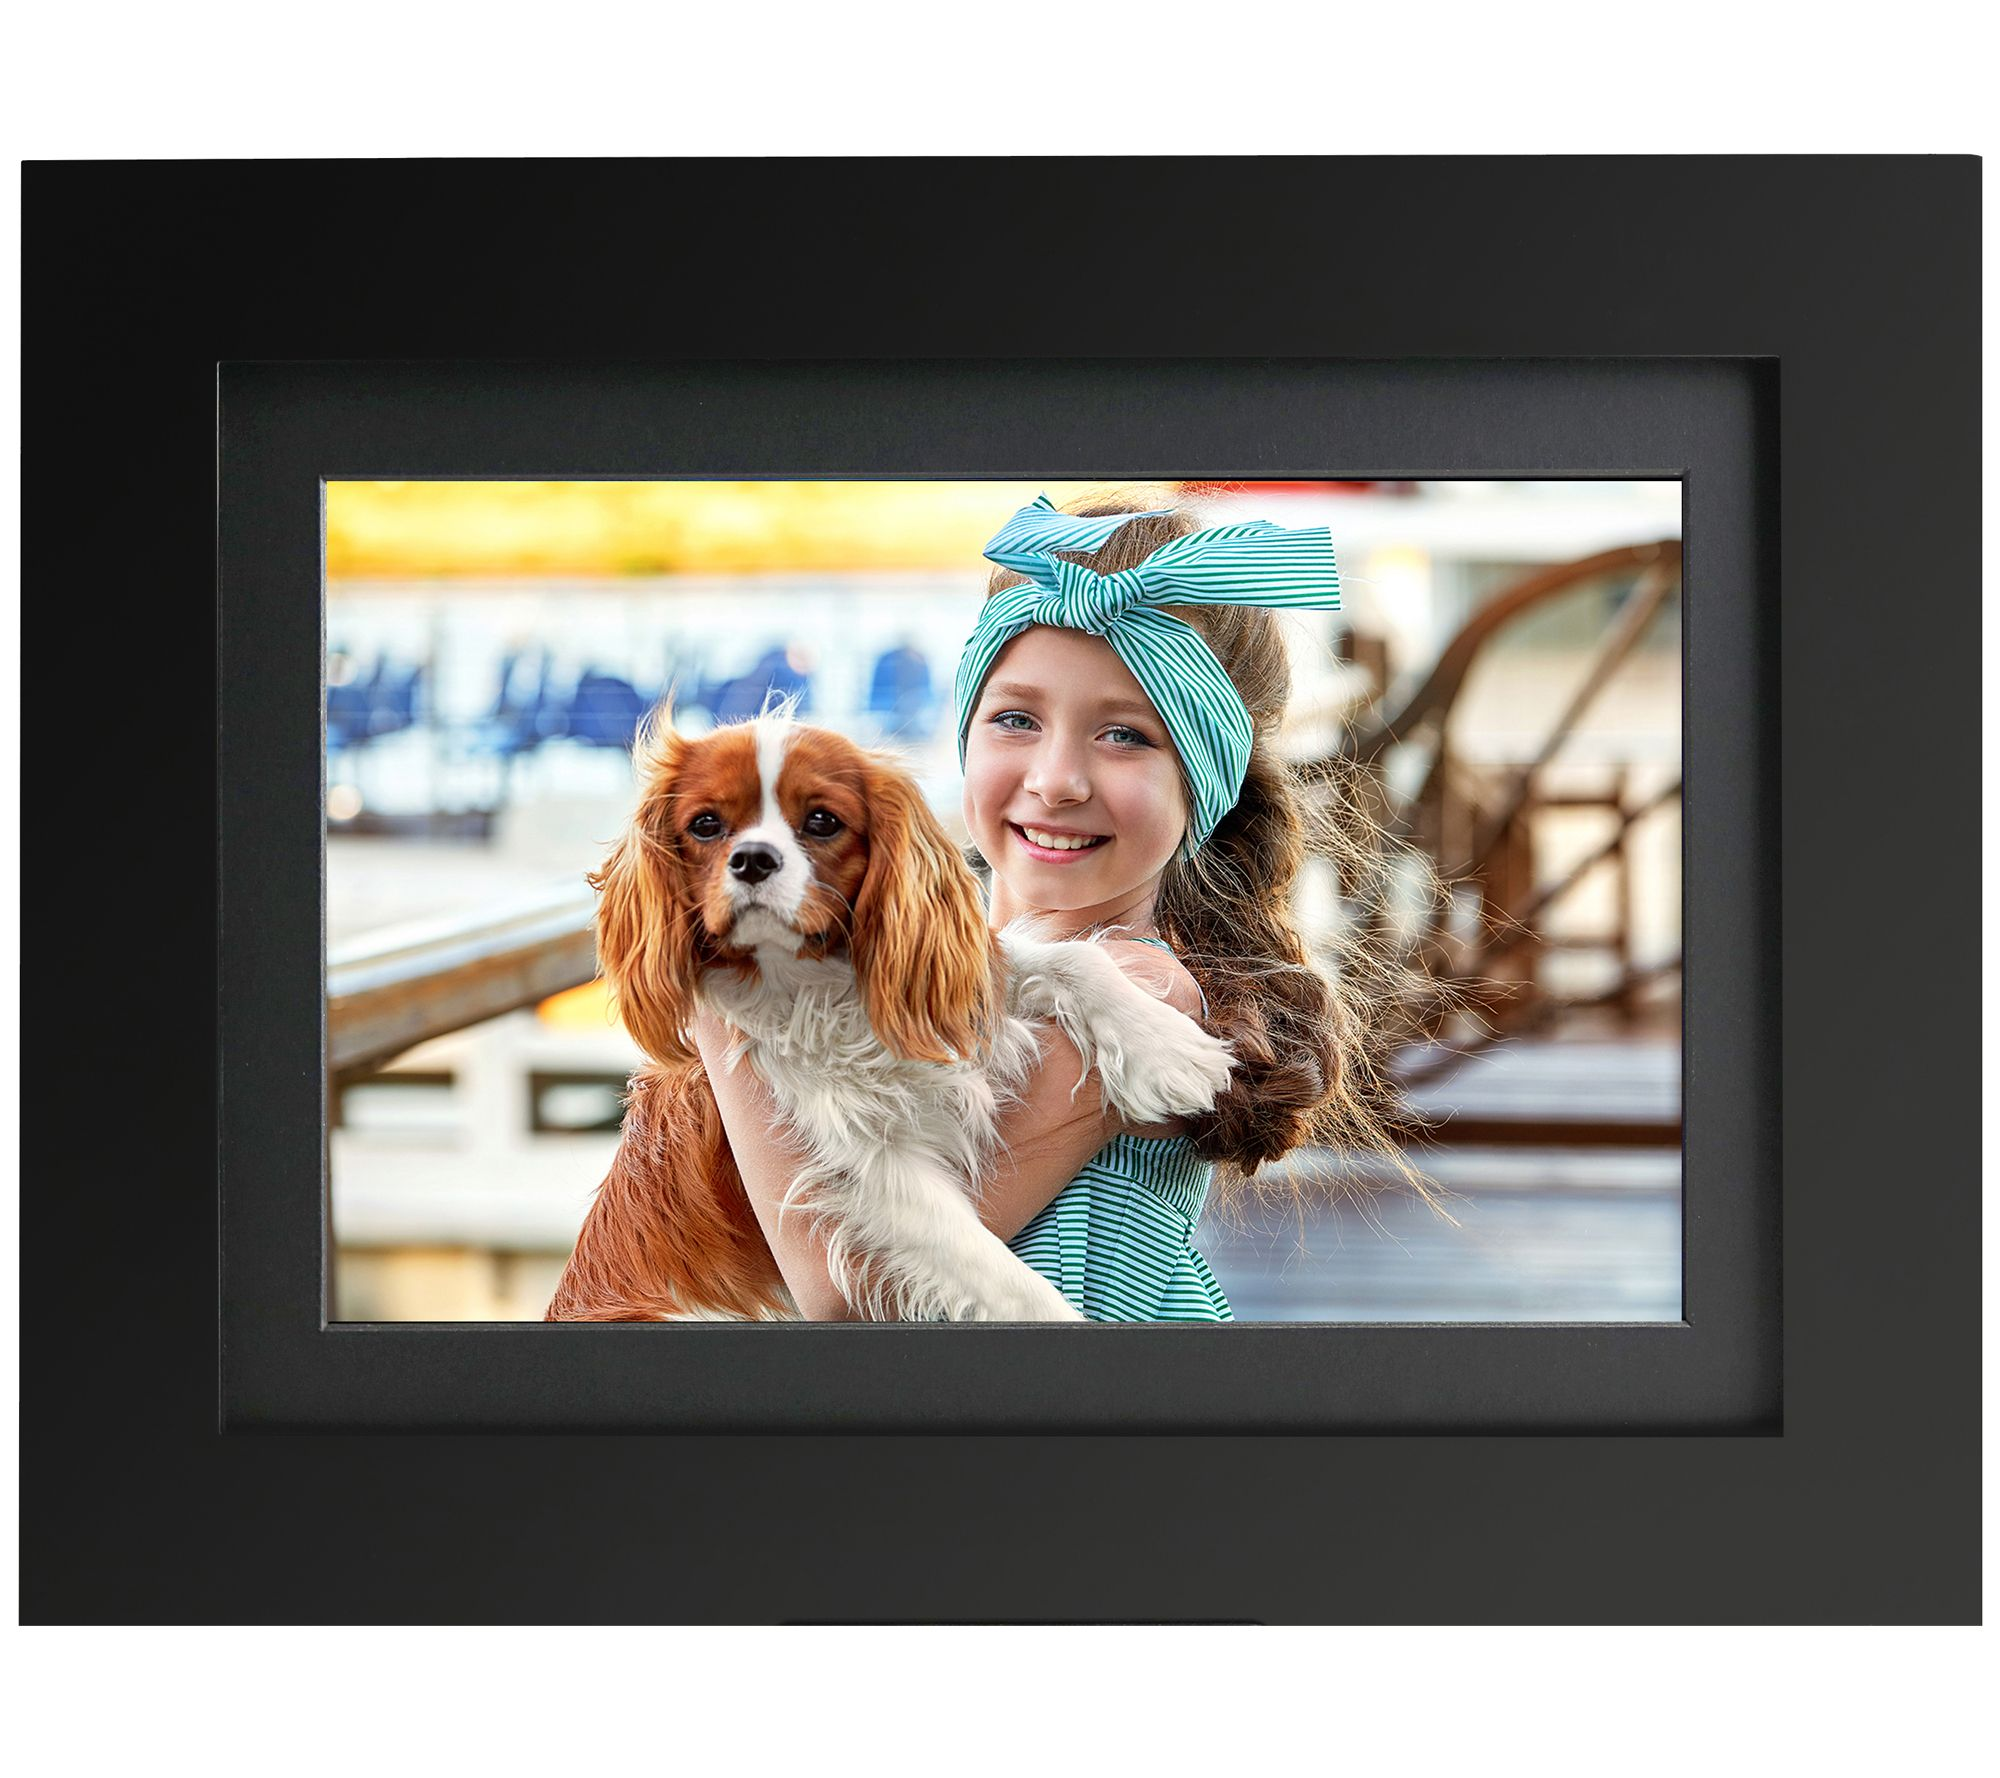 Brookstone smart digital photo frame